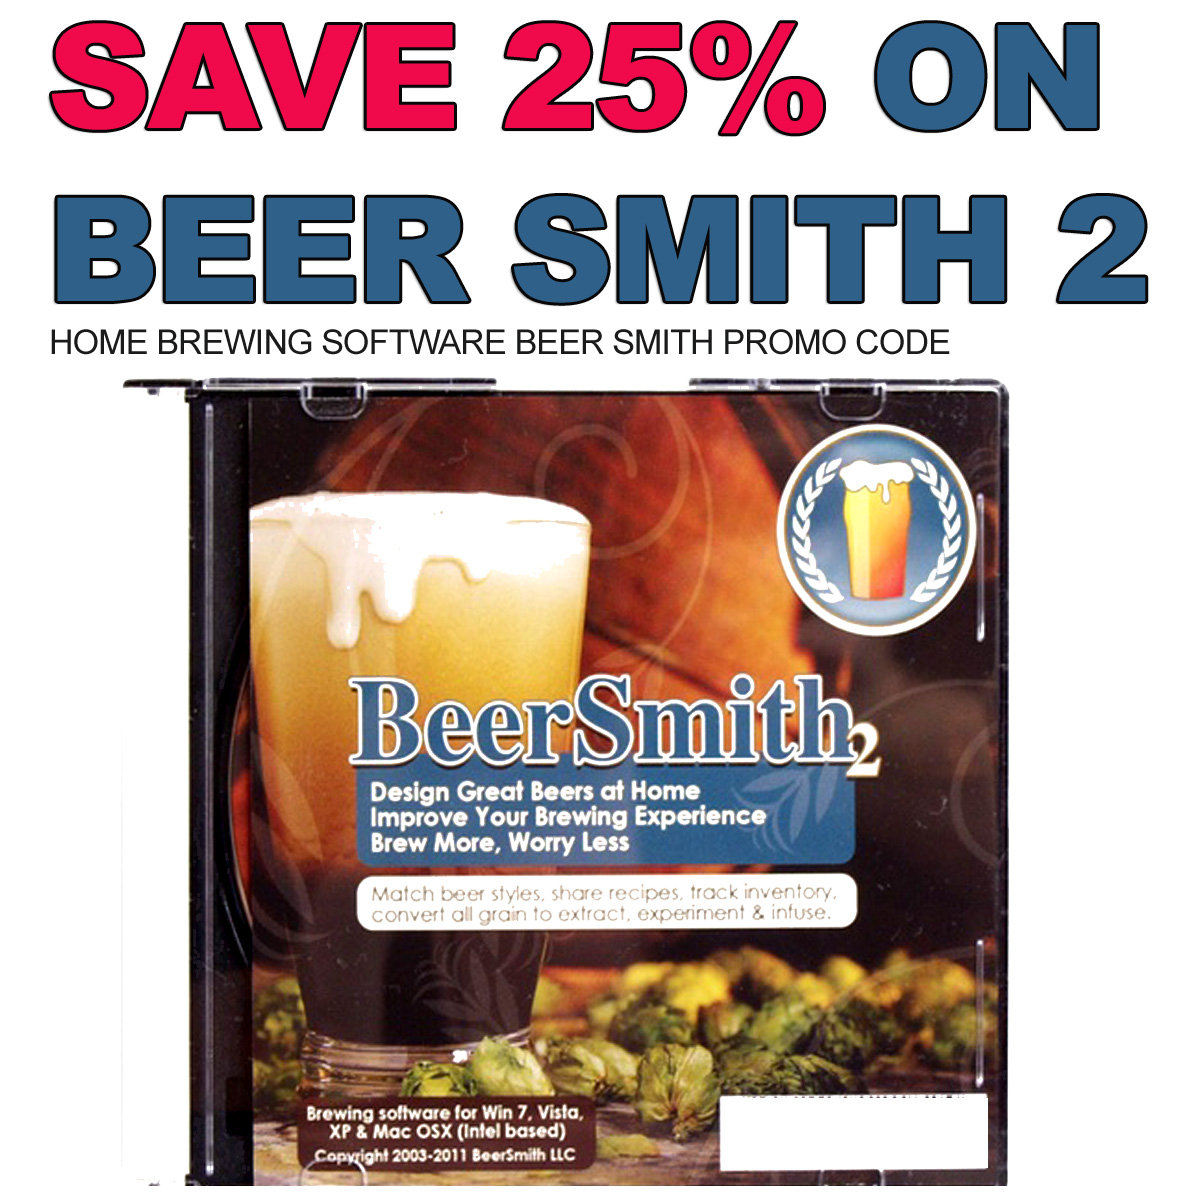 Sale Price $18.99 Regular Price $25.99 Beer Smith Home Beer Brewing Software Promo Code Coupon Code